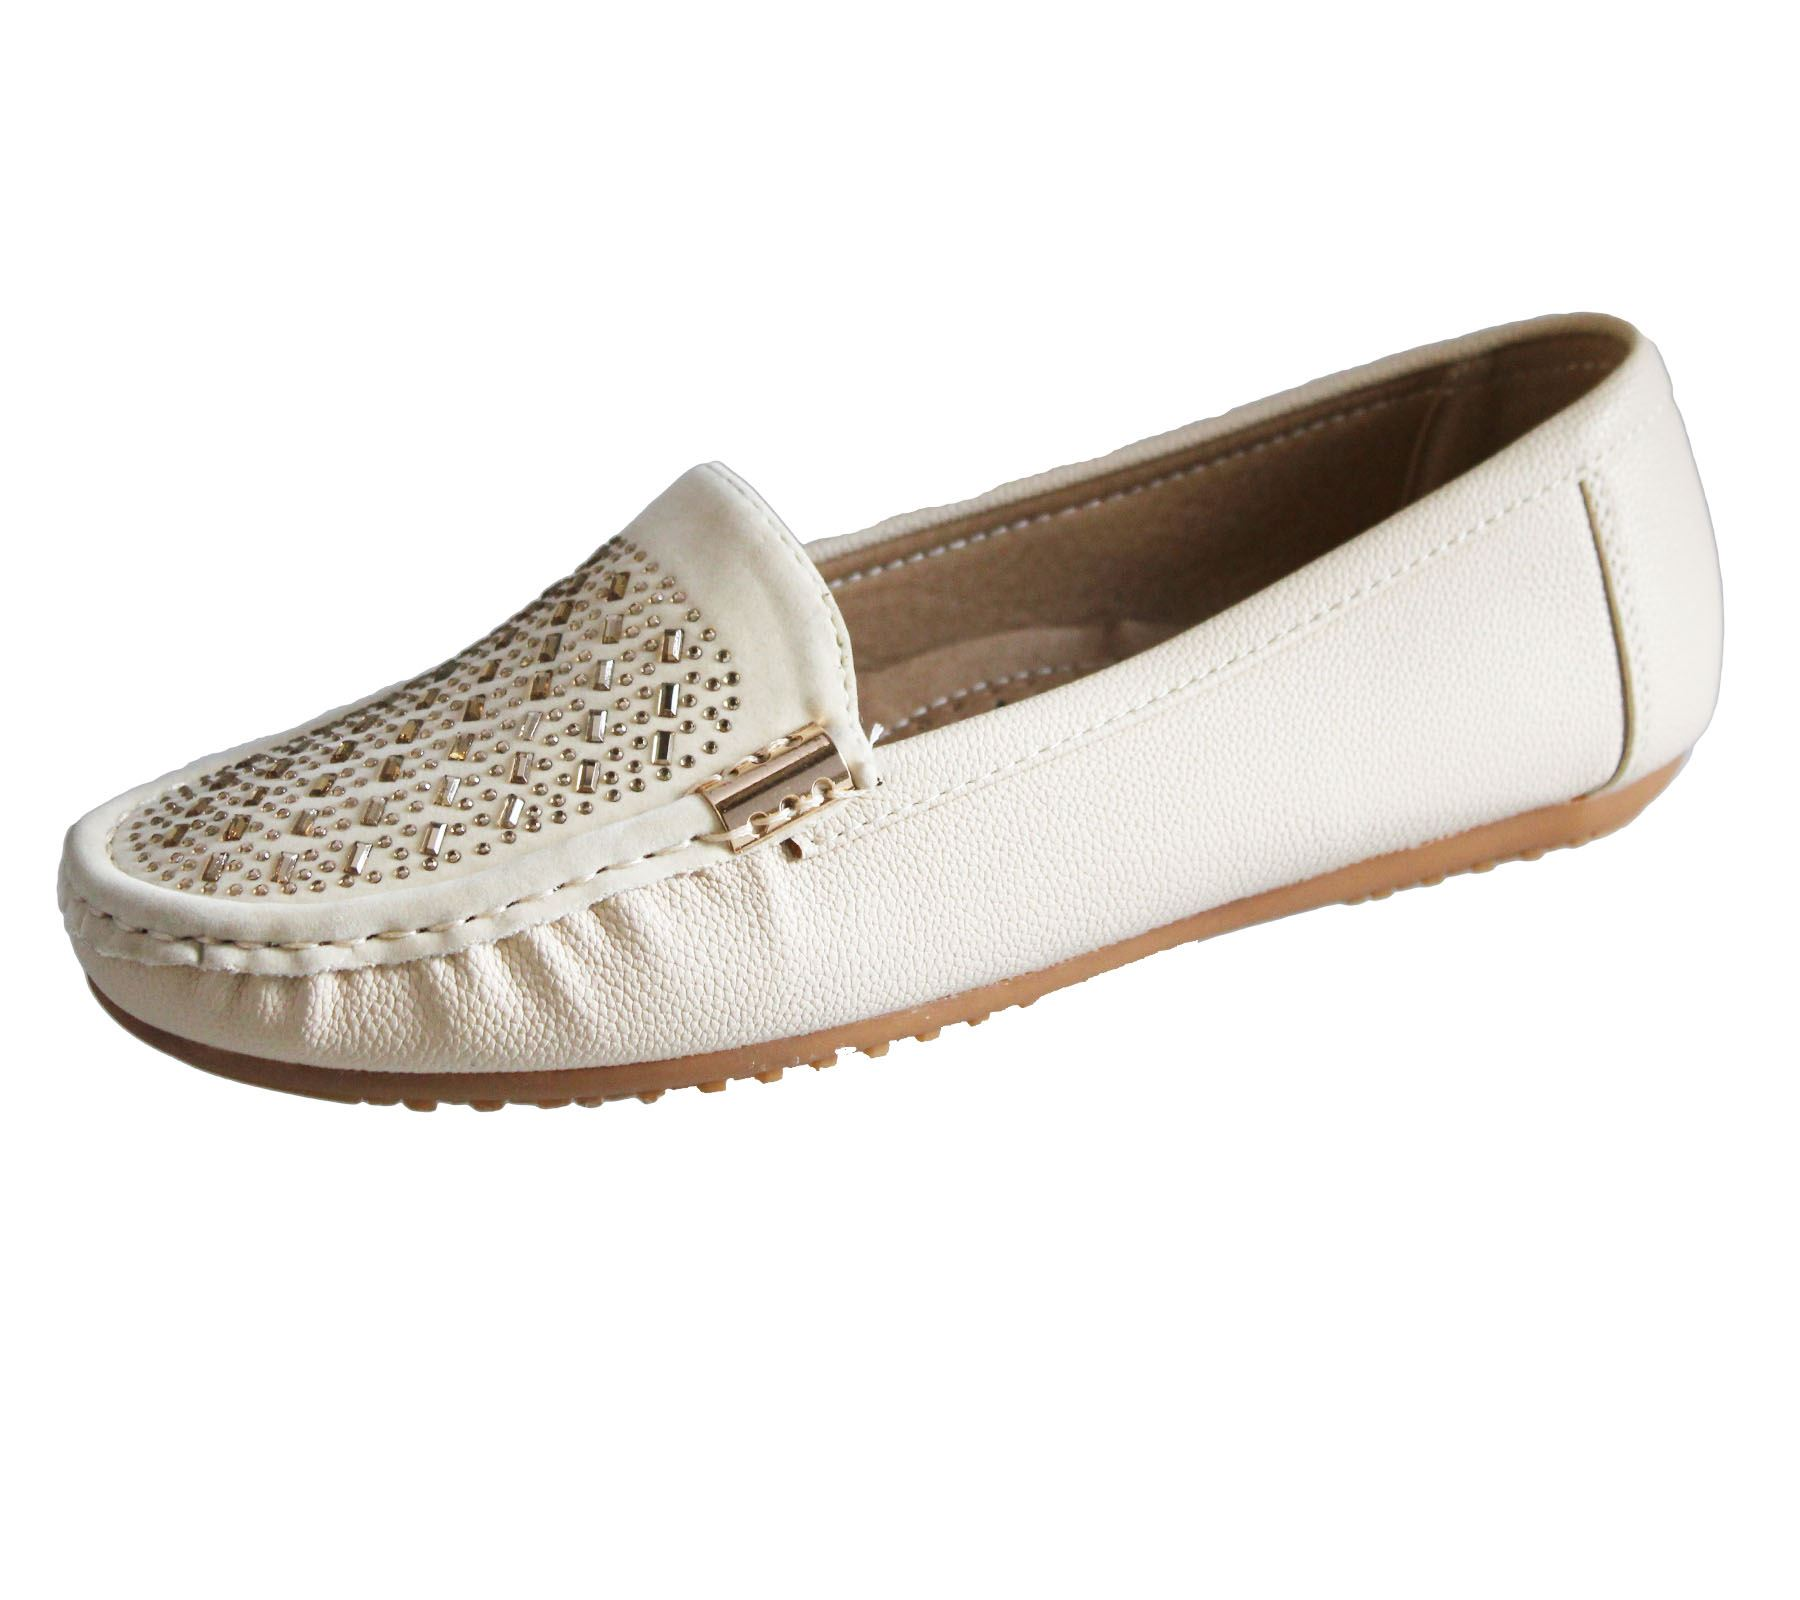 Casual, Comfortable Shoes for Women These are the styles you want to live in. Easy, fun, relaxed, and most of all stylish and comfortable. Naturalizer designs women's casual shoes to be lived in and handle just about any situation life could throw your way.